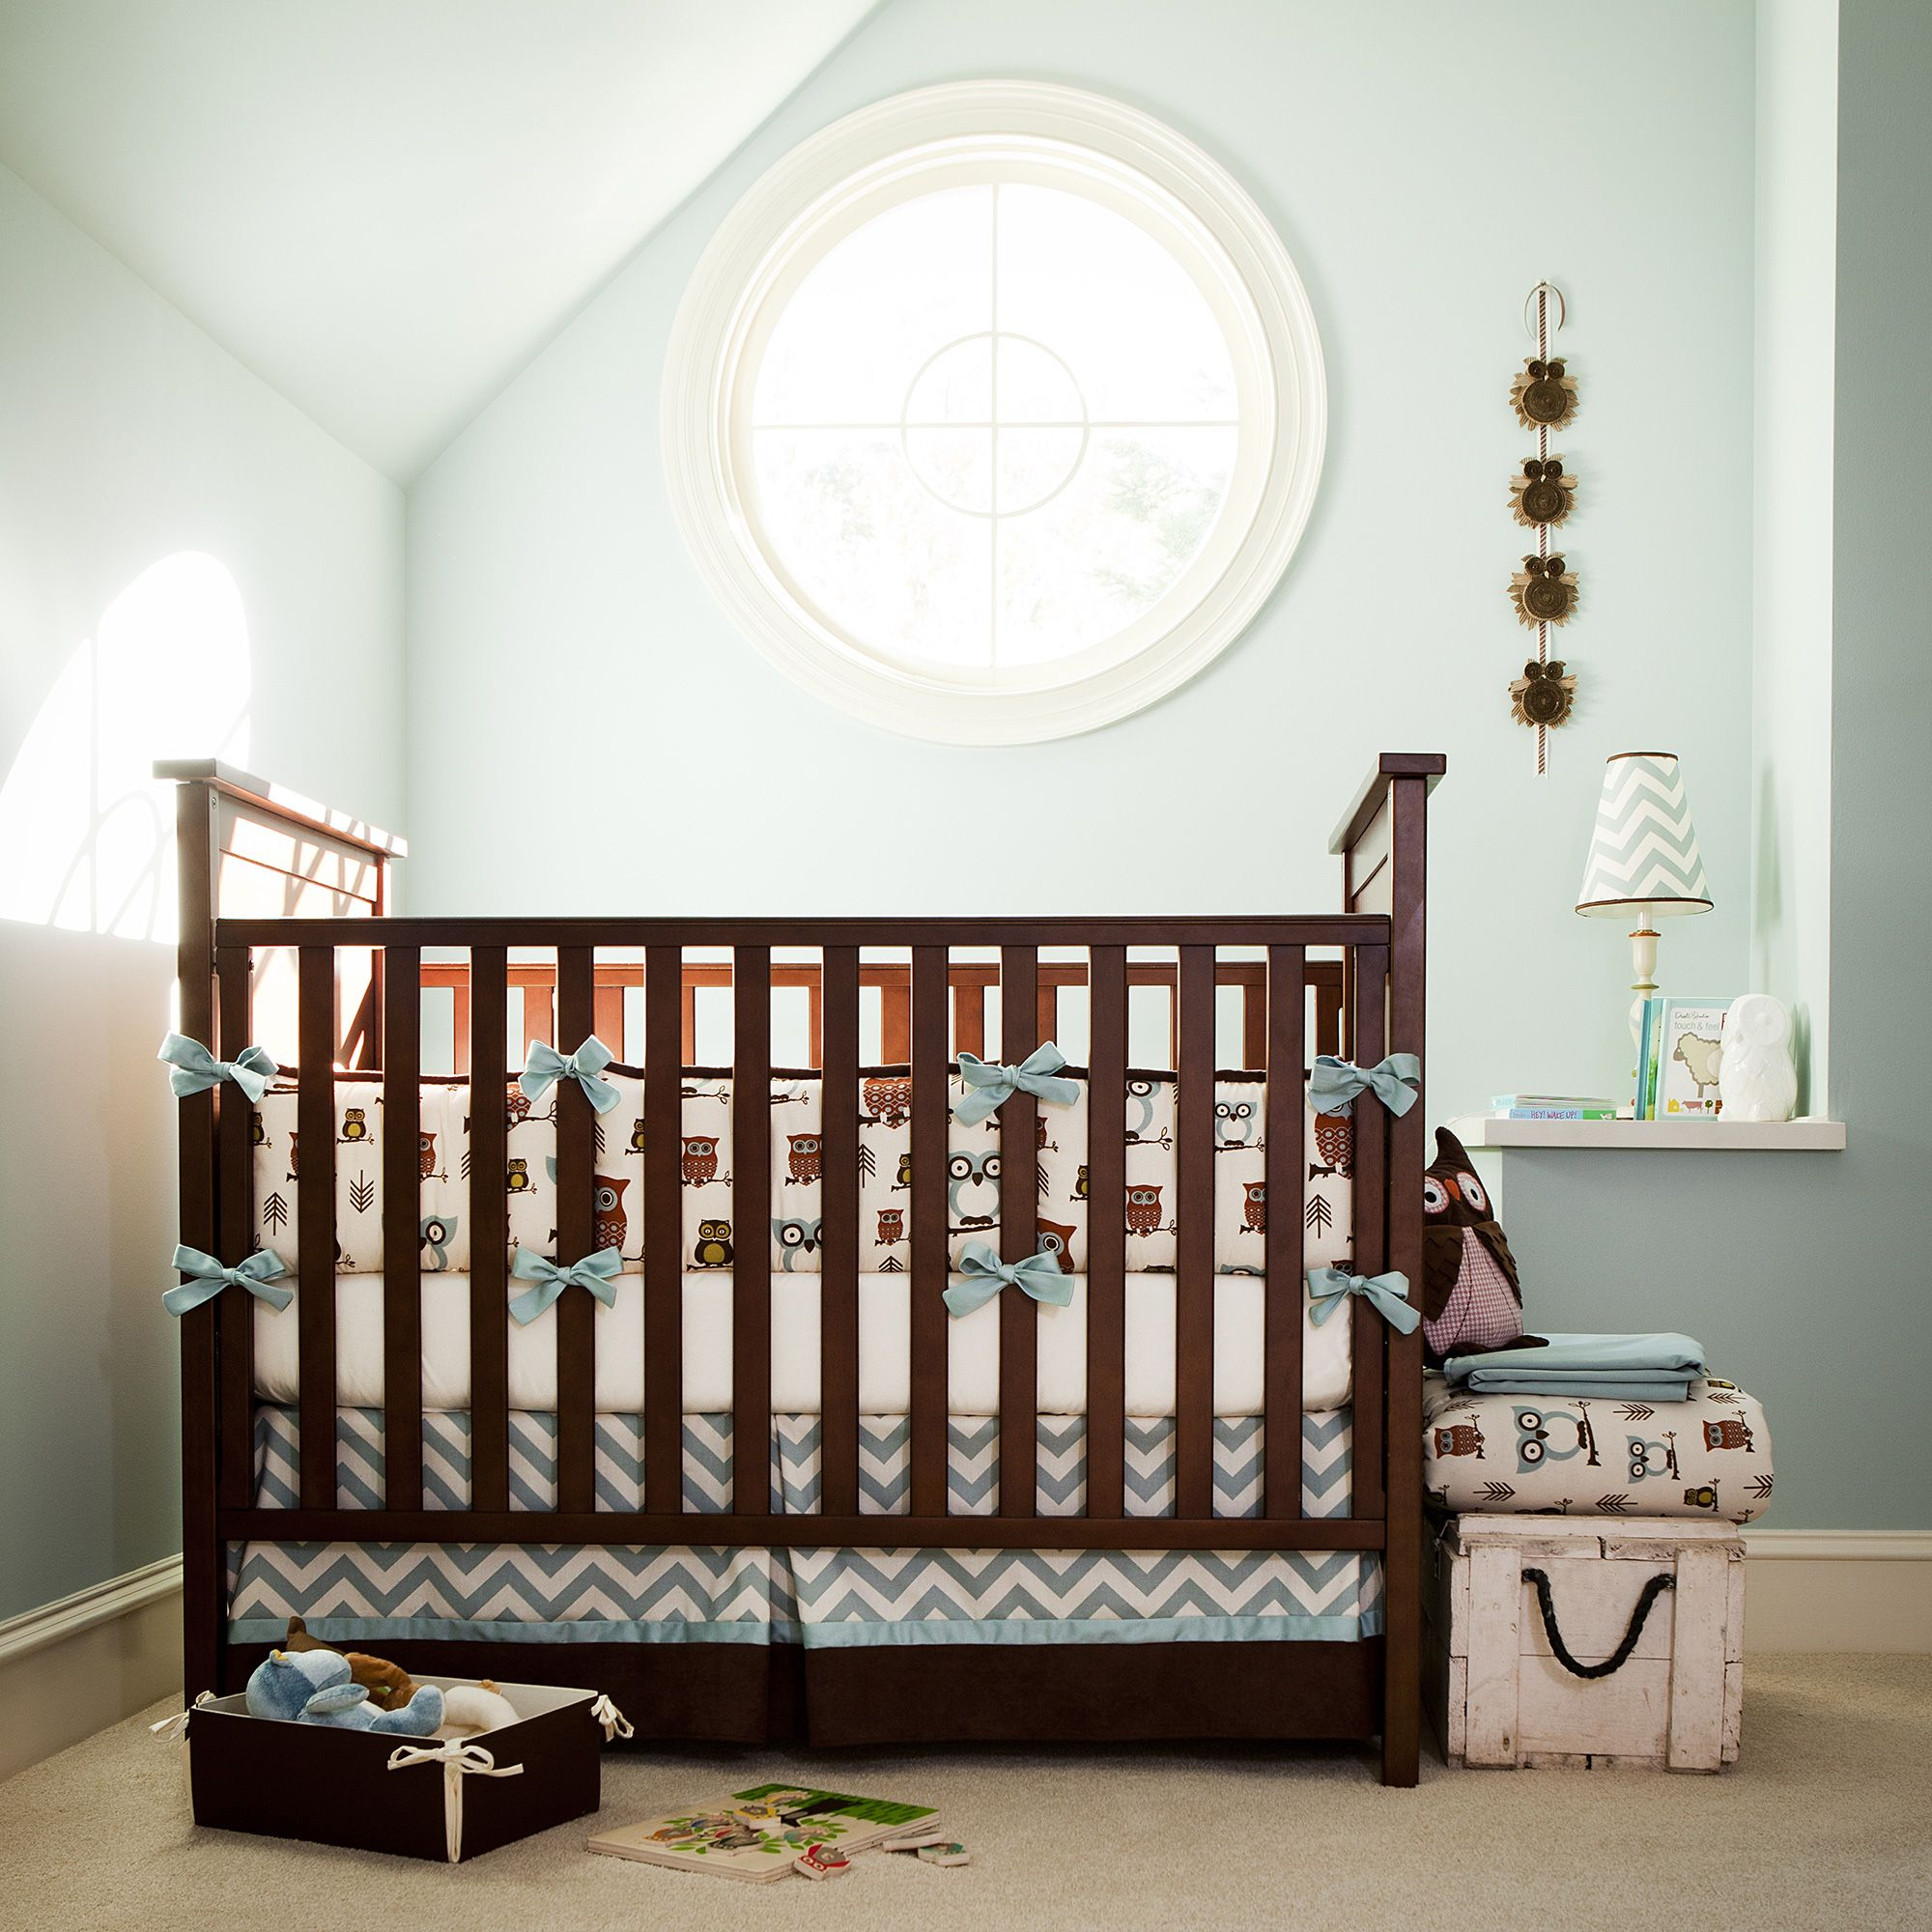 Retro Owls Baby Crib Bedding Carouseldesigns